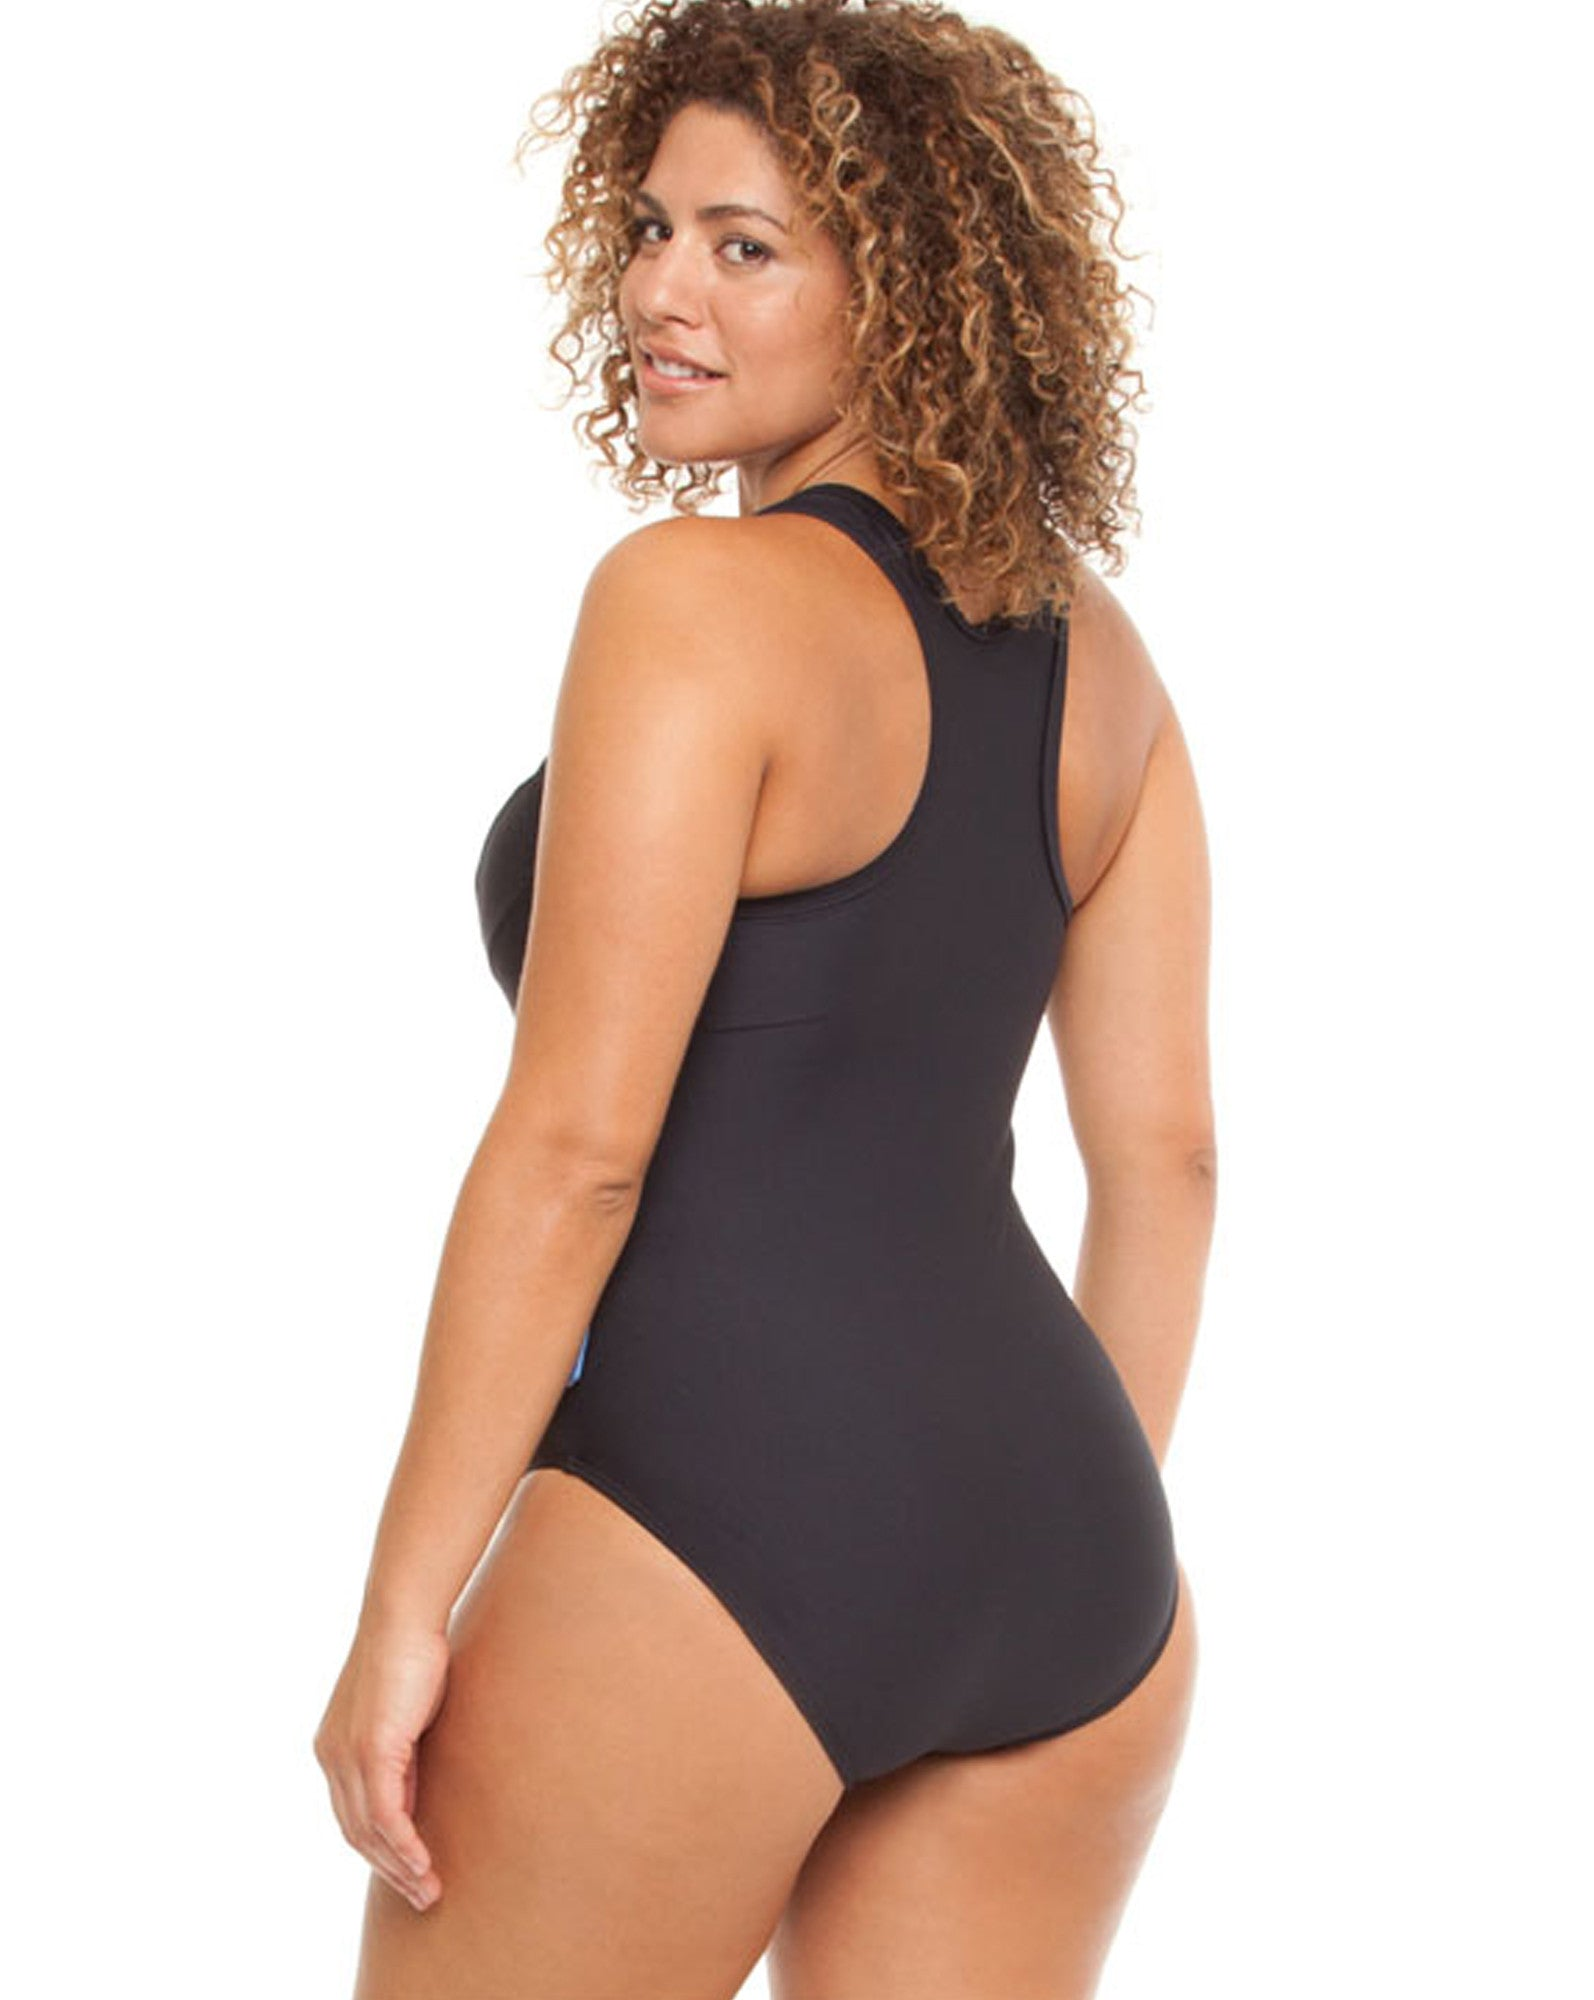 35a8cfbe7c4 Top Selling RacerBack Swim Suit